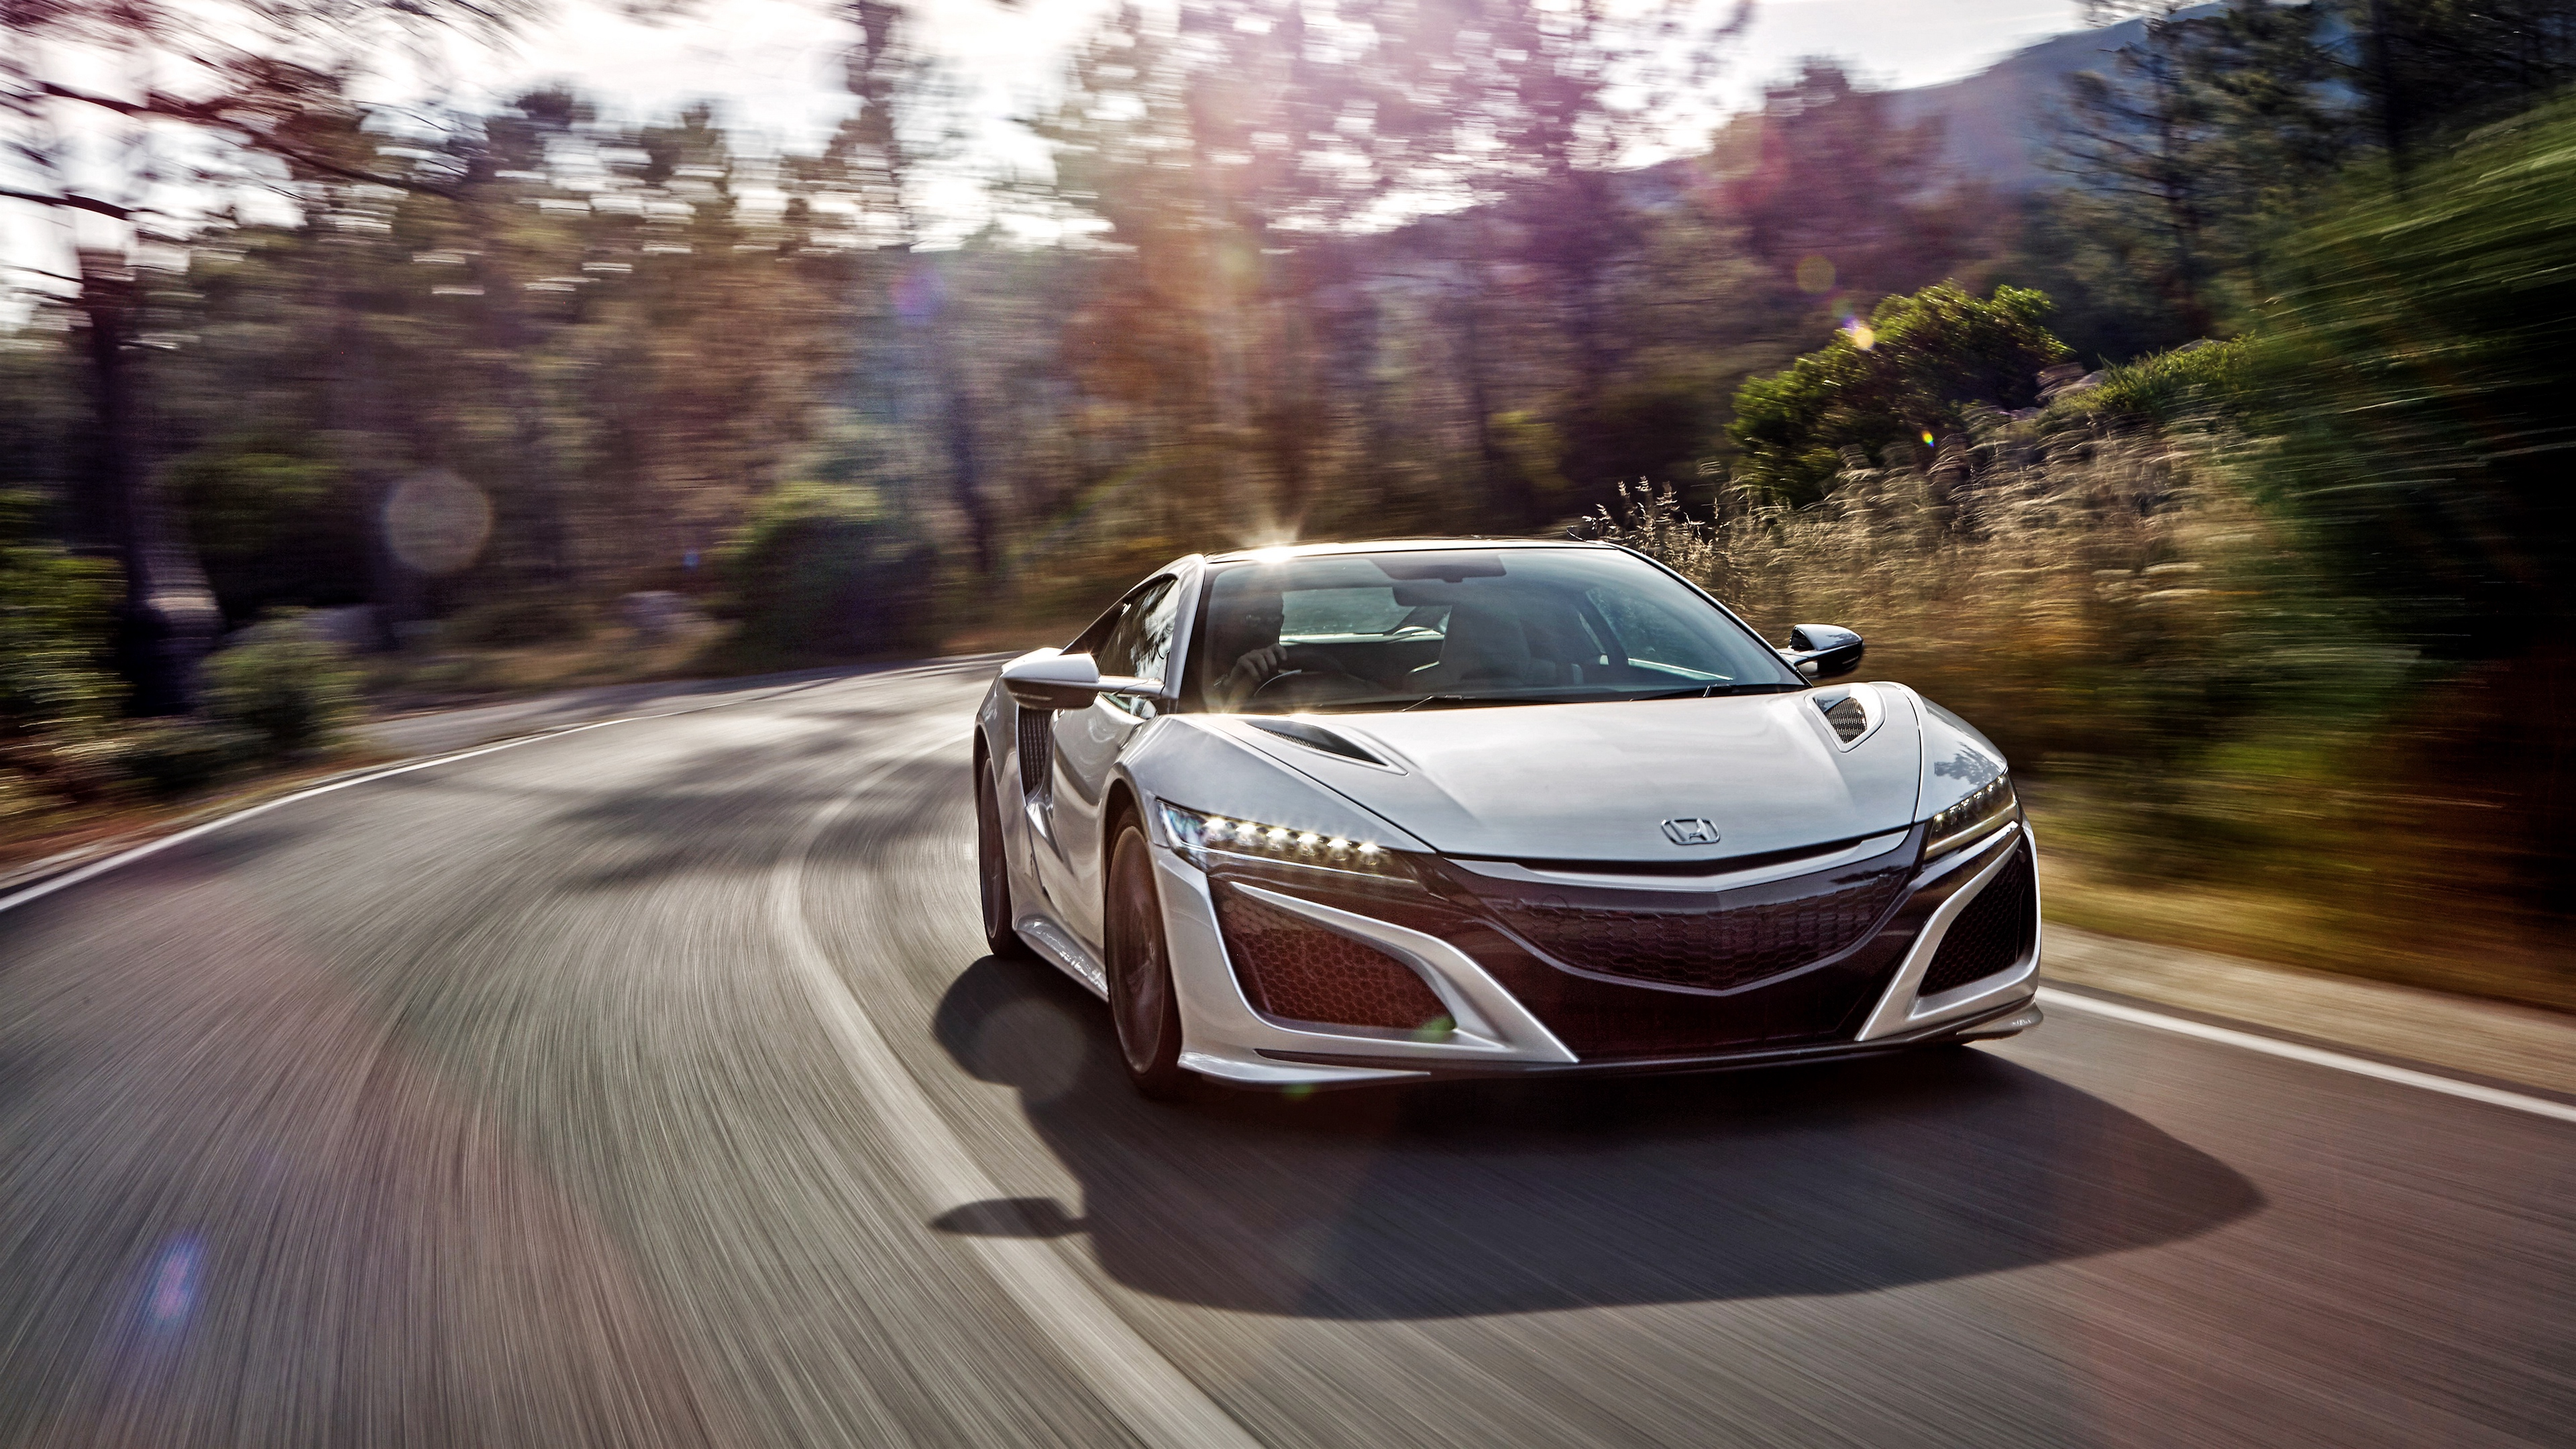 Wallpaper Honda Acura Nsx Front View Speed Acura Nsx Wallpaper 4k 3840x2160 Wallpaper Teahub Io